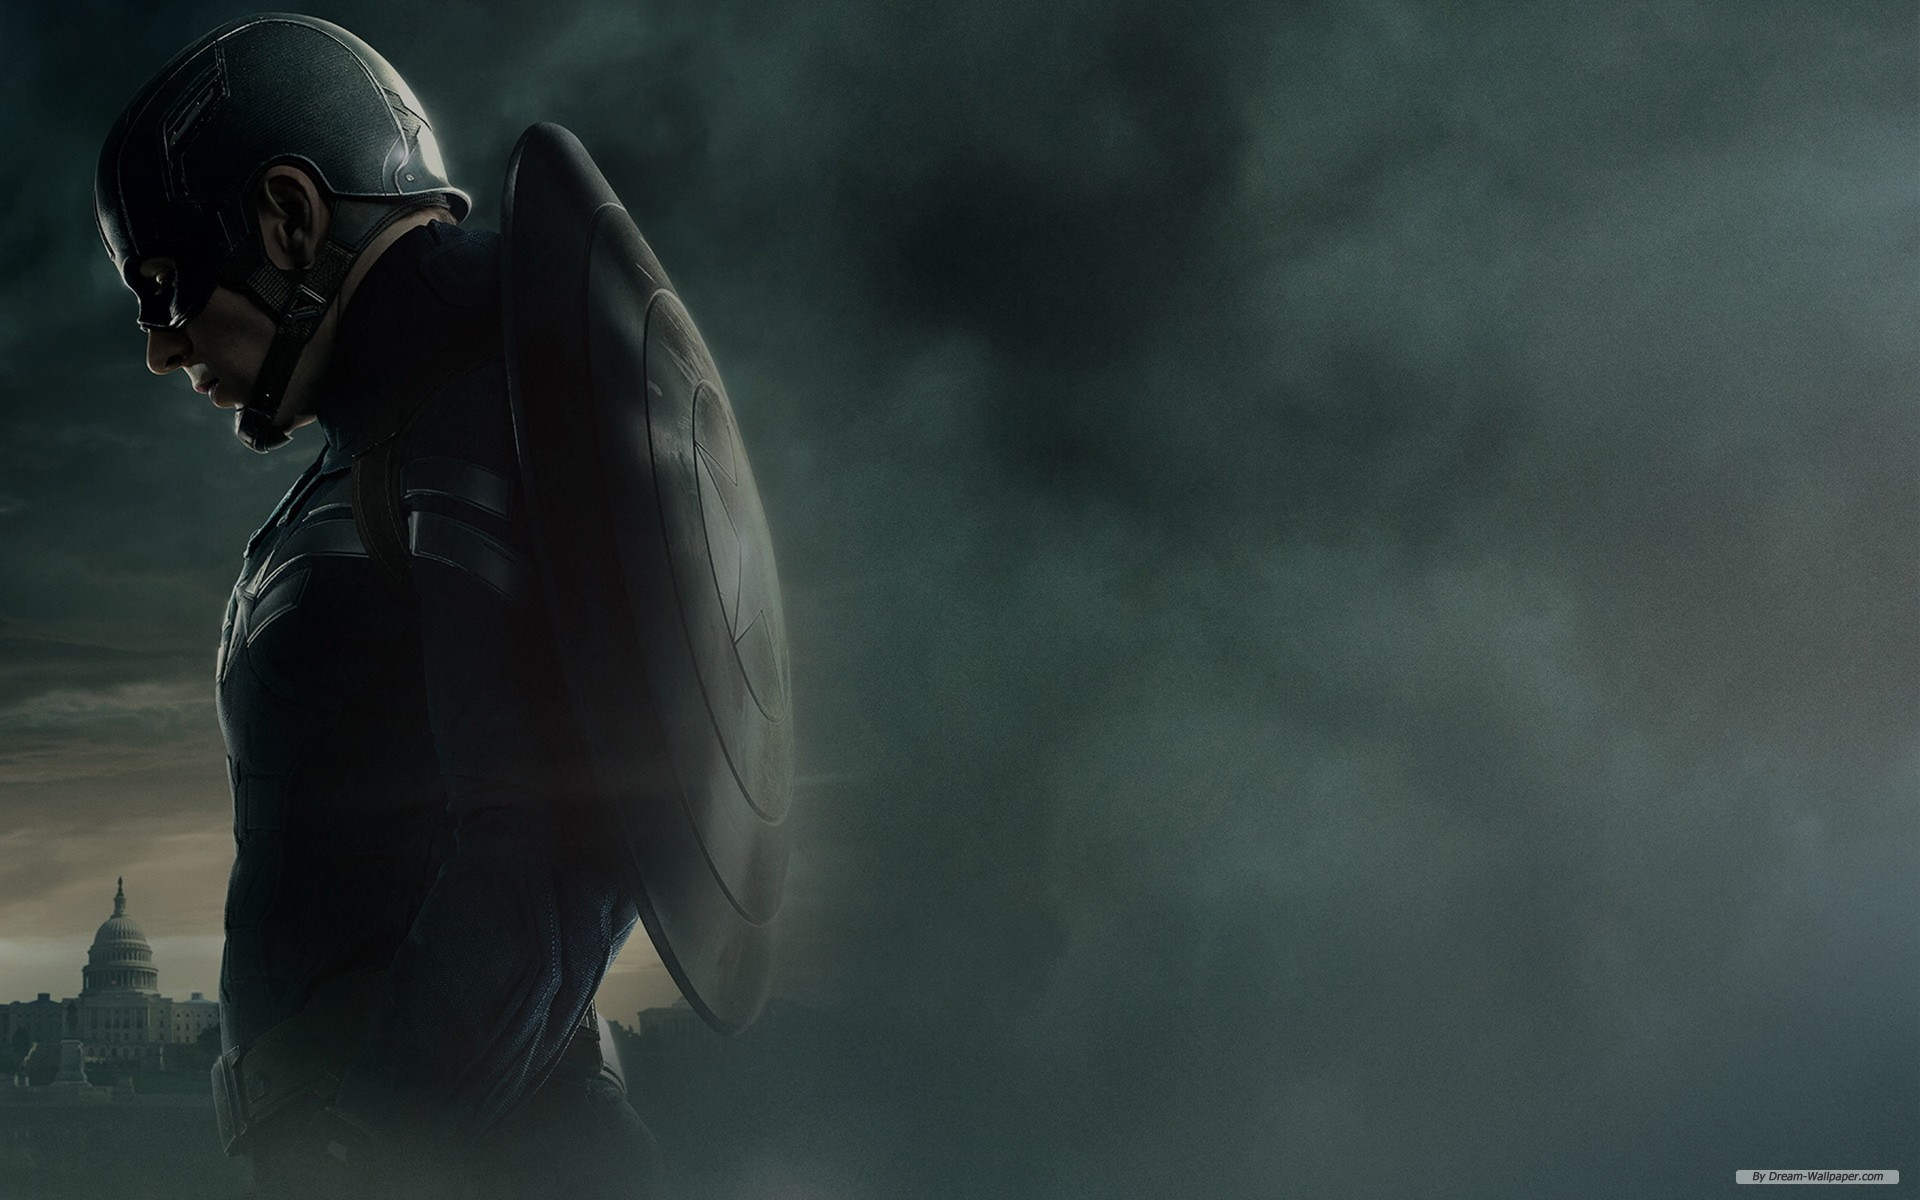 1920x1200 Free Movie wallpaper - Captain America The Winter Soldier wallpaper -   wallpaper - Index 2